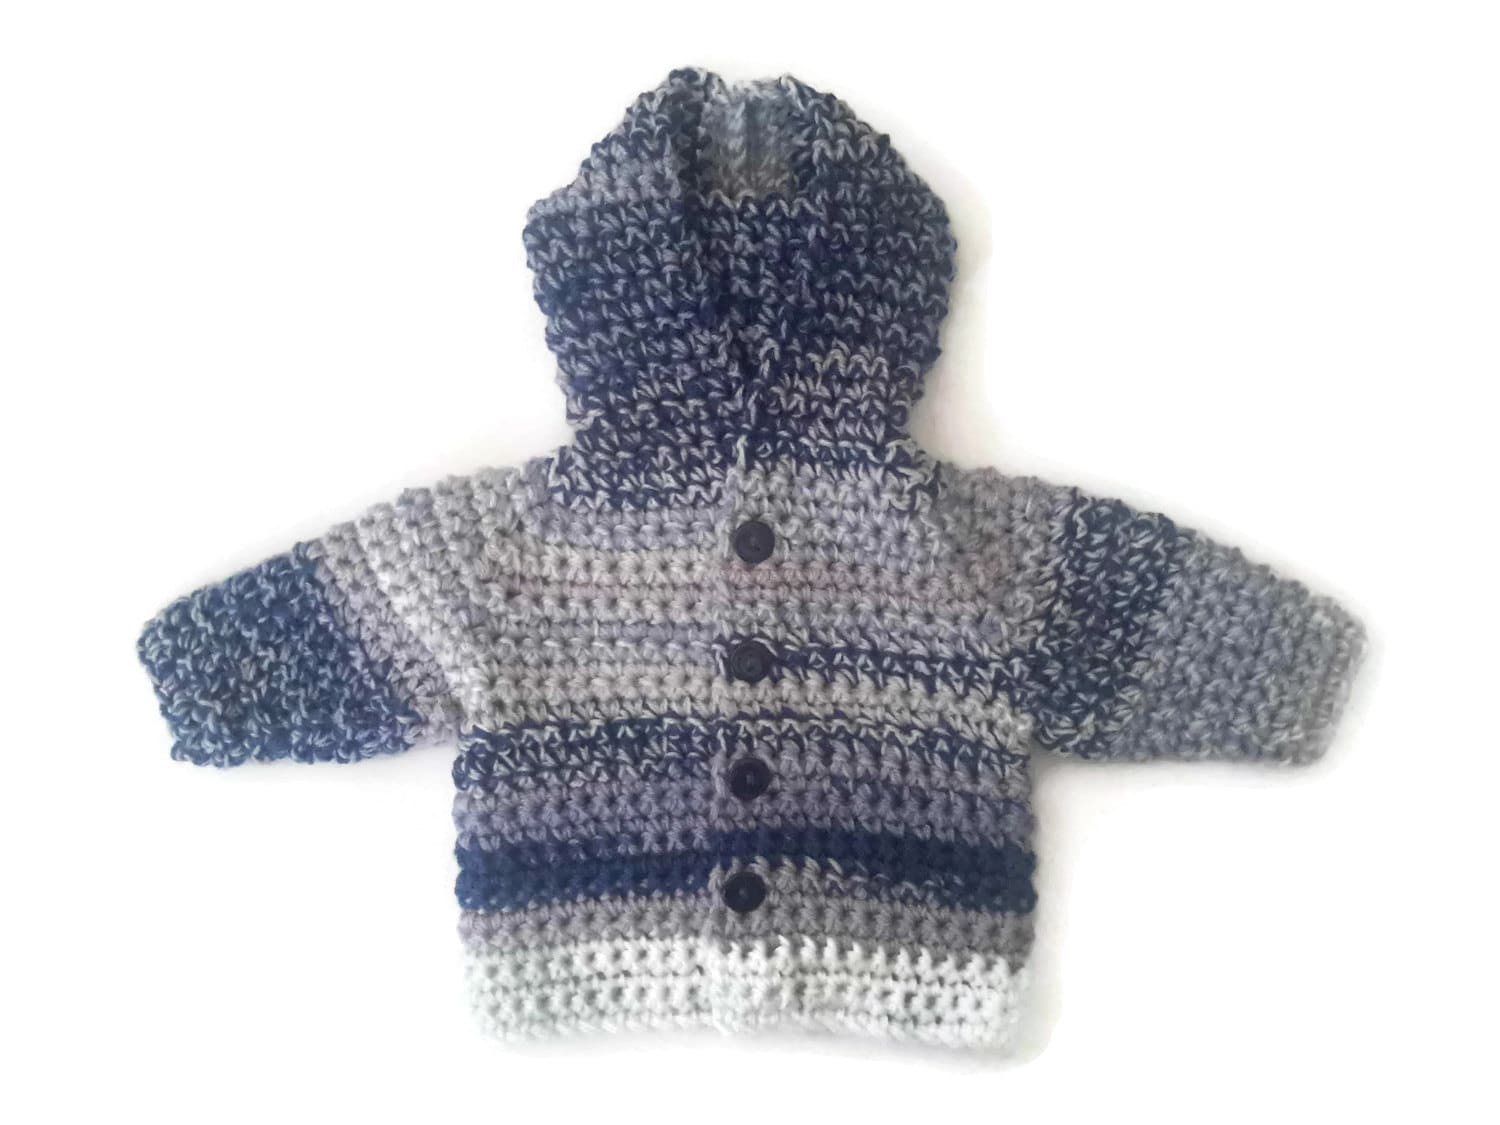 Wool mix chunky baby hooded coat baby boy sweater jacket cardigan hoodie navy blue stripe baby sweater baby shower gift.   035 months